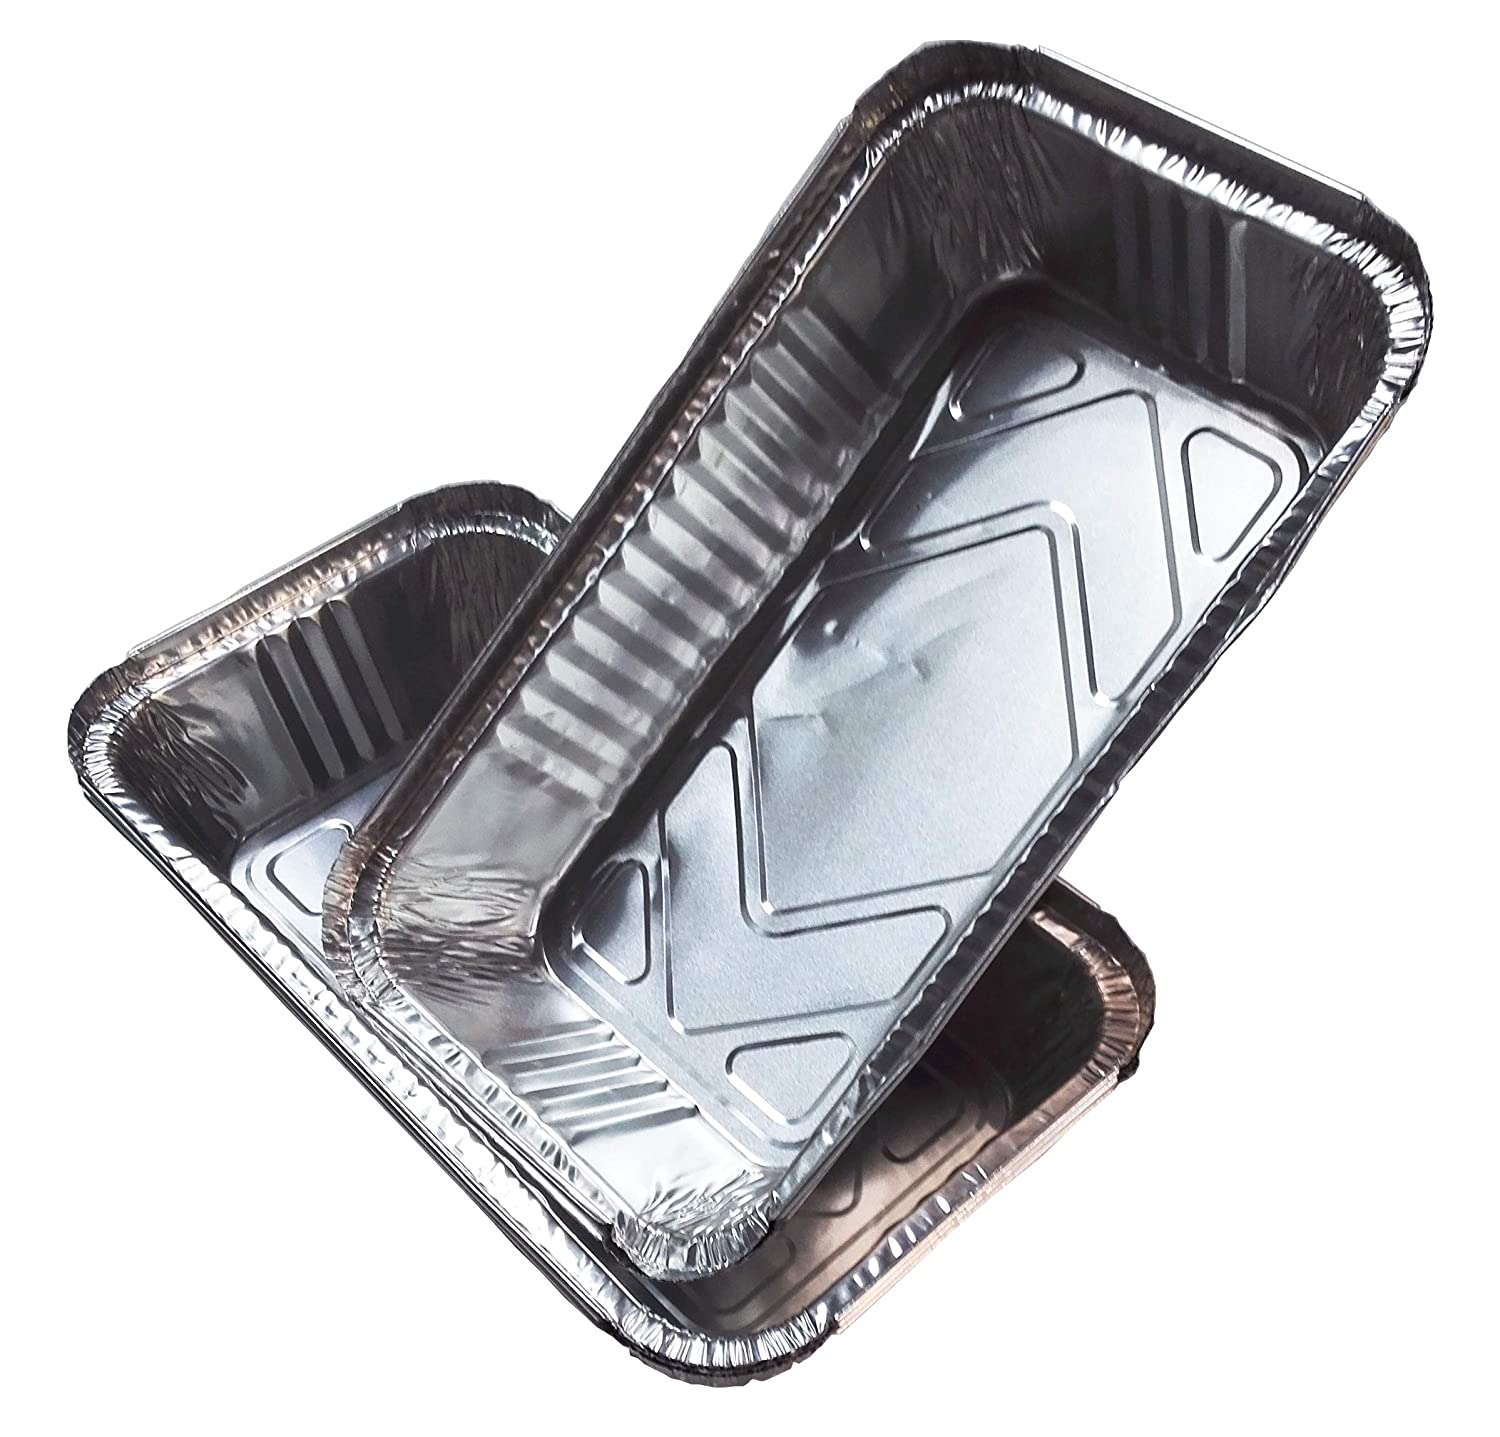 soldbbq 5-Pack Big Easy Aluminum Grease Tray for Char-Broil